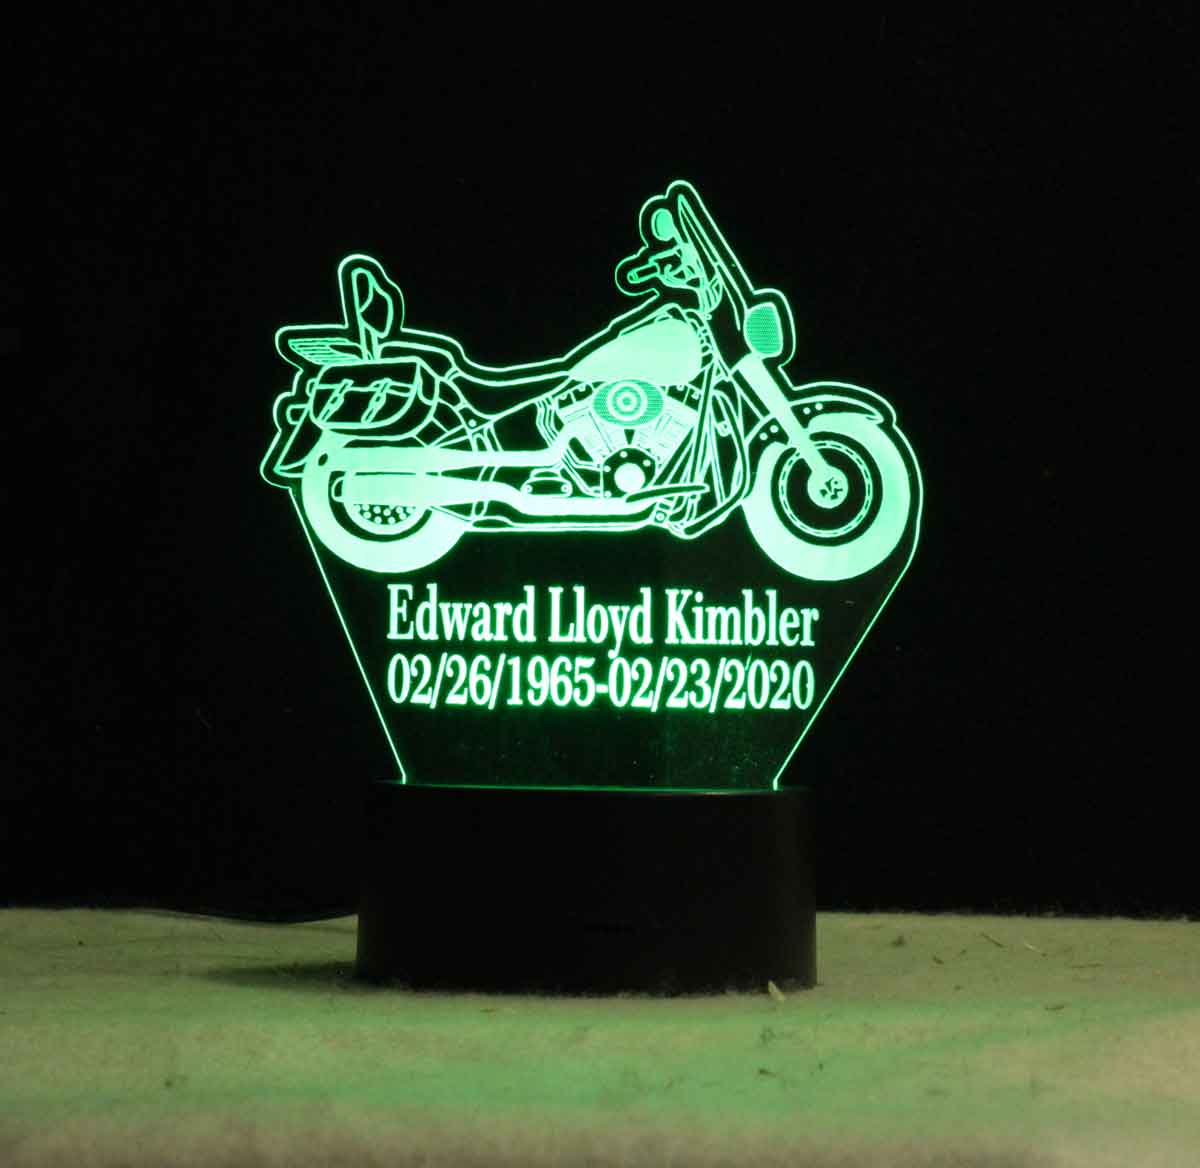 Personalized Motorcycle Table Top night light  USB/battery/110V/110V/240V battery operated Motorcycle night light